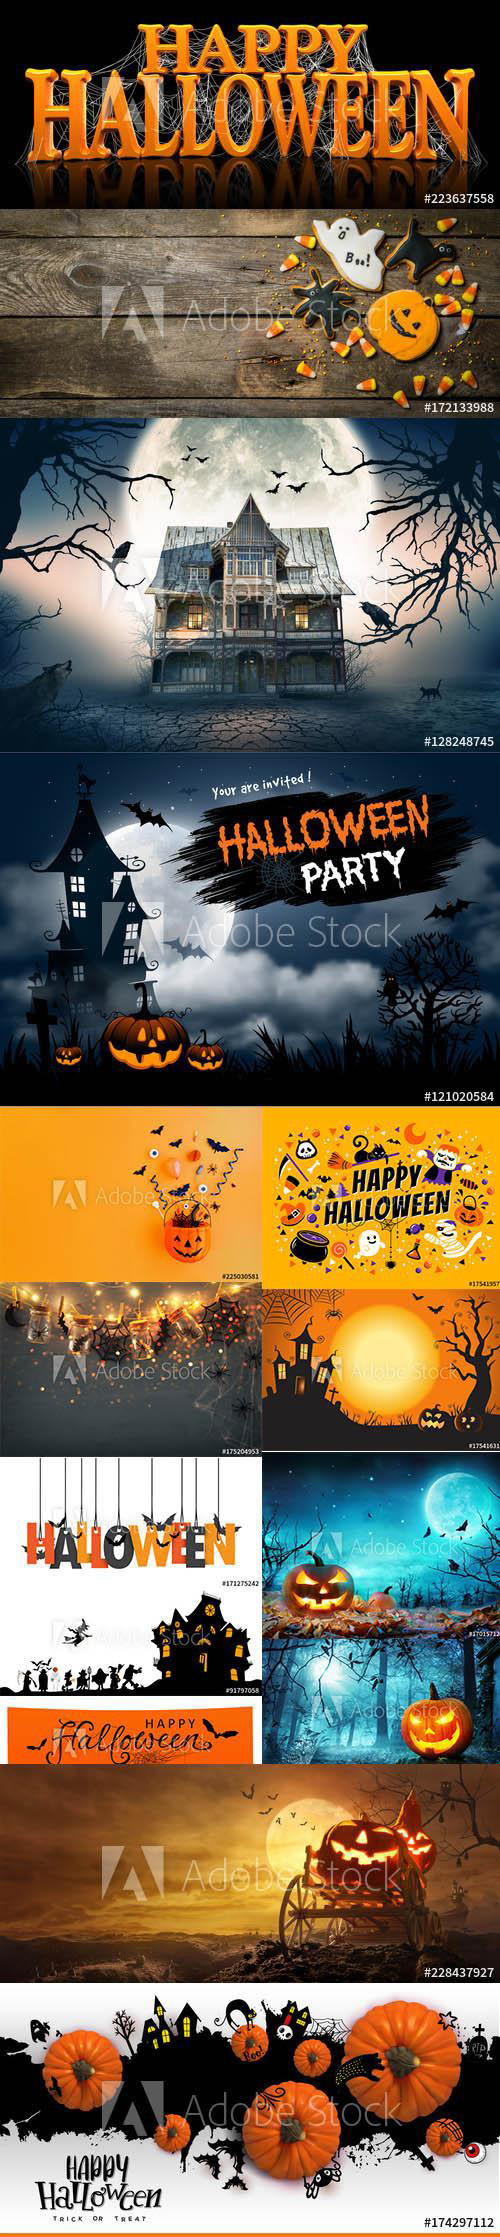 Happy Halloween Background and Elements set vol3